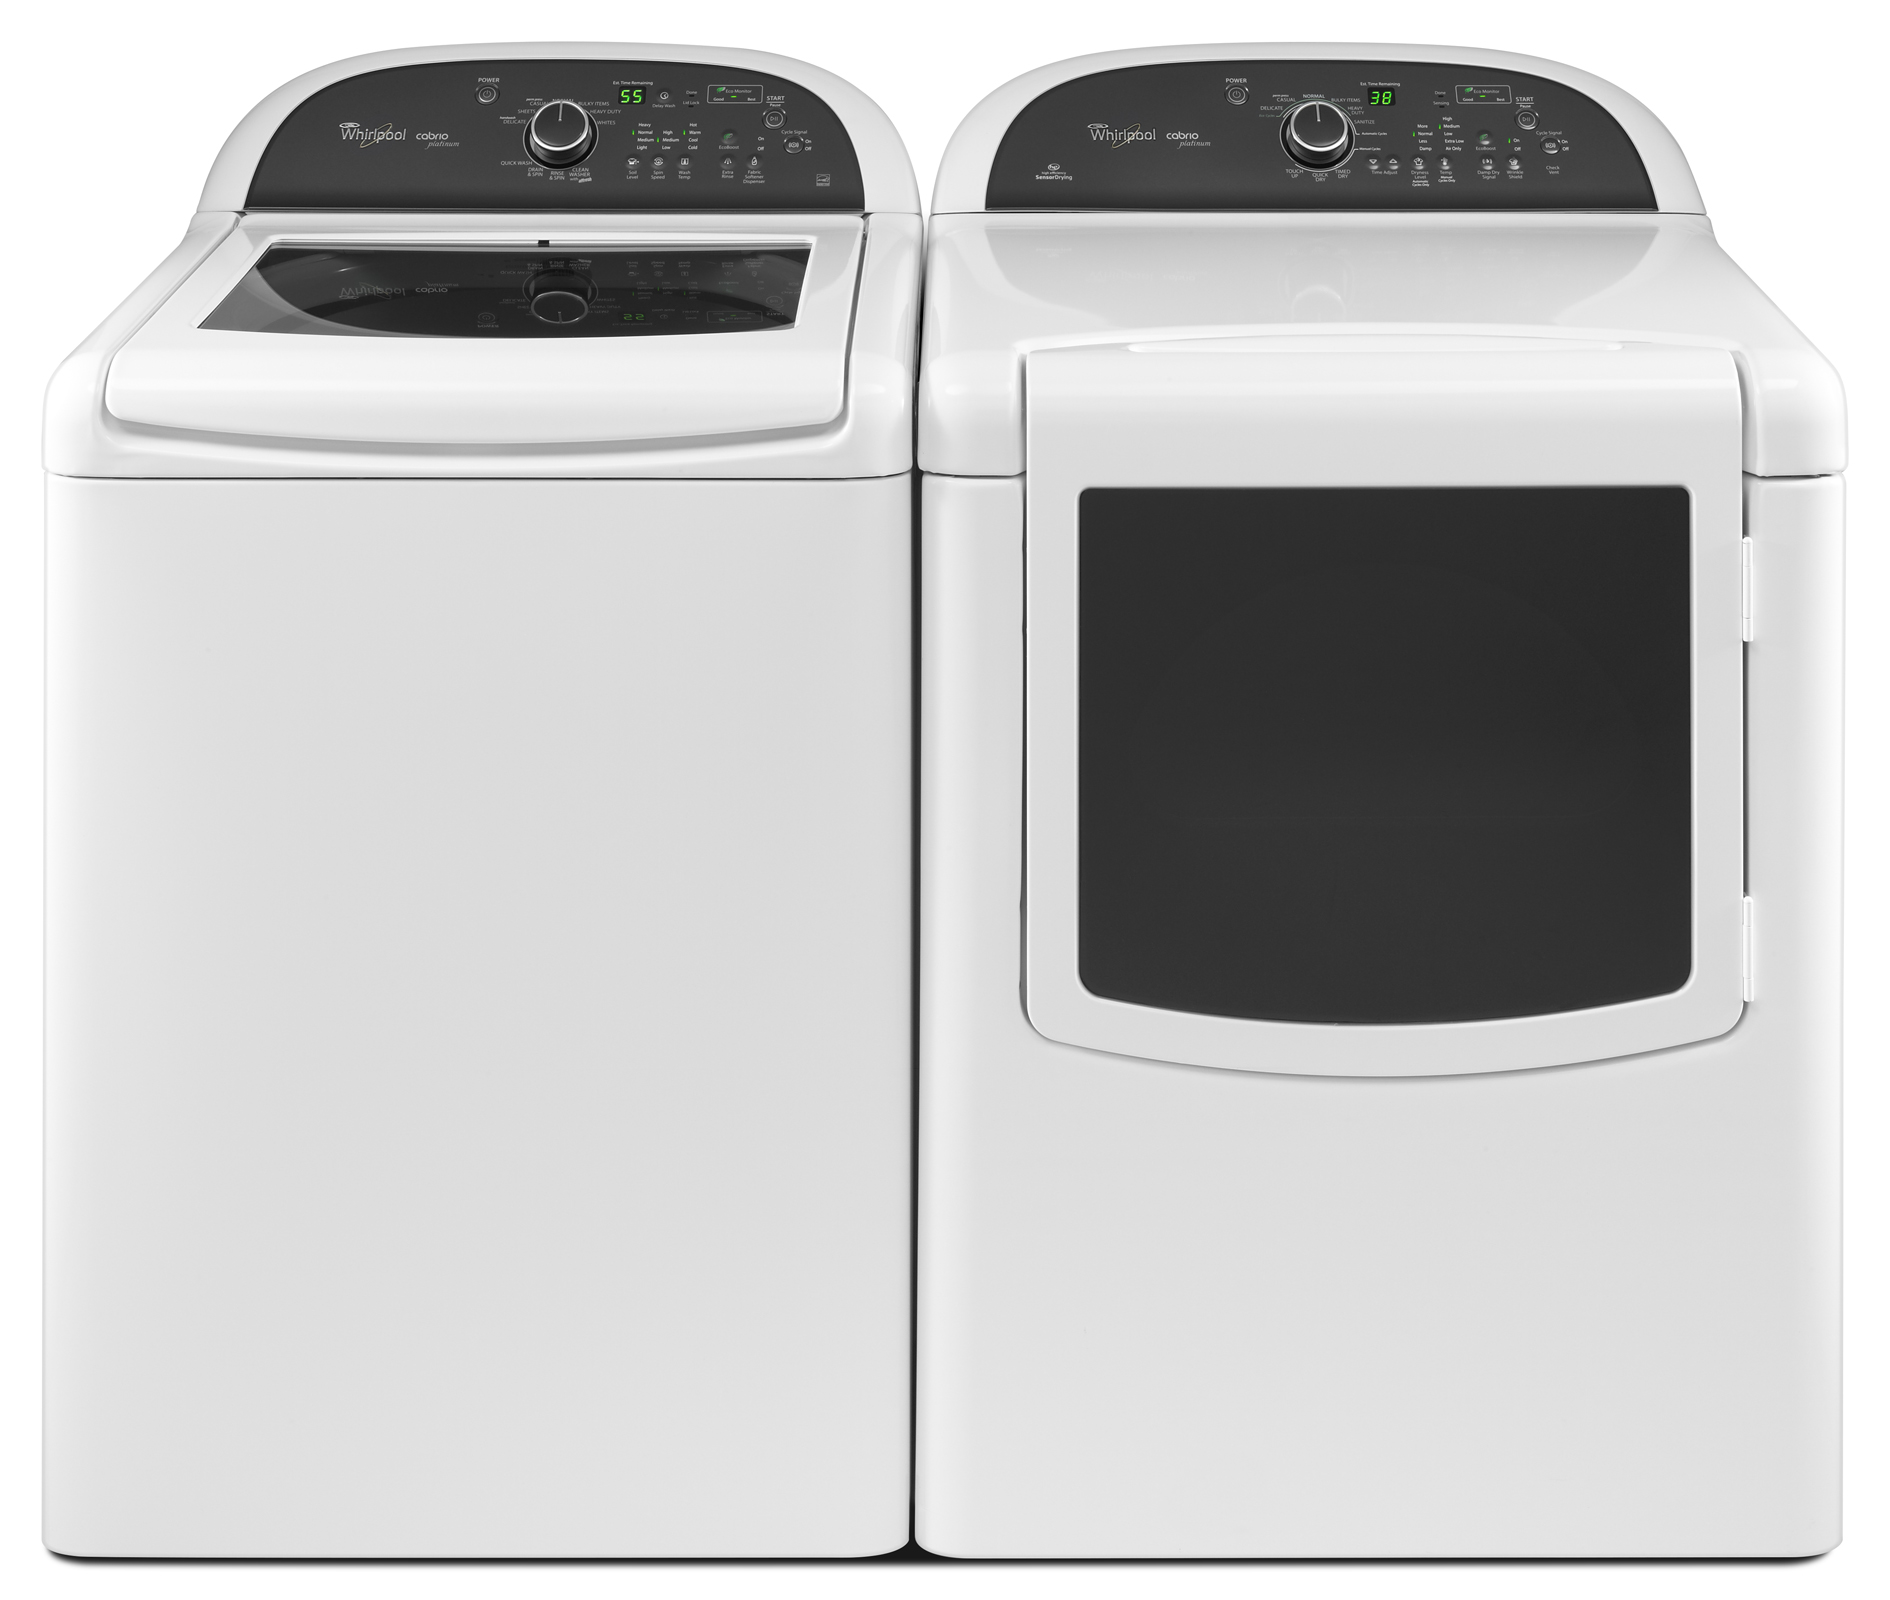 Whirlpool 7.6 cu. ft. Cabrio® Platinum Gas Dryer w/ Advanced Moisture Sensing - White